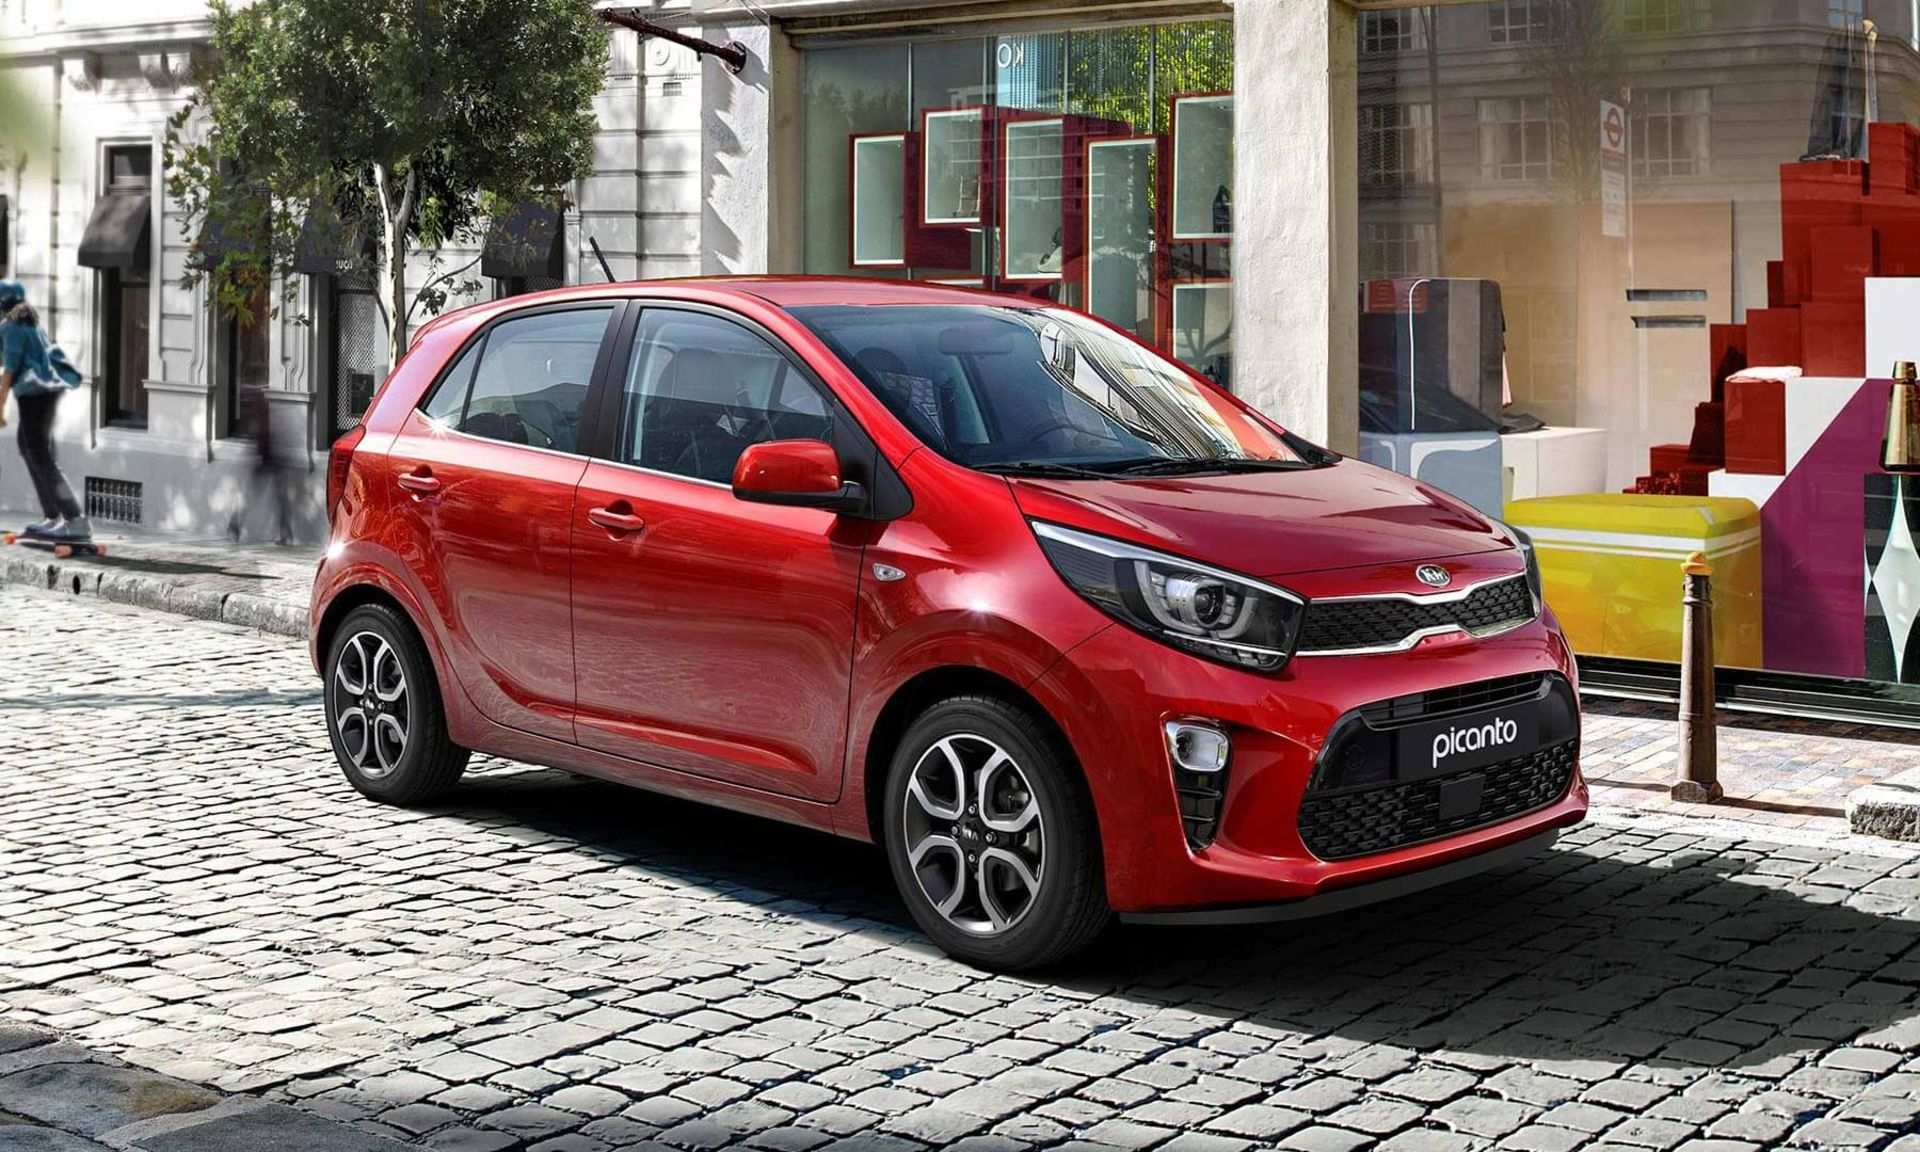 80 New Kia Picanto 2019 Pictures